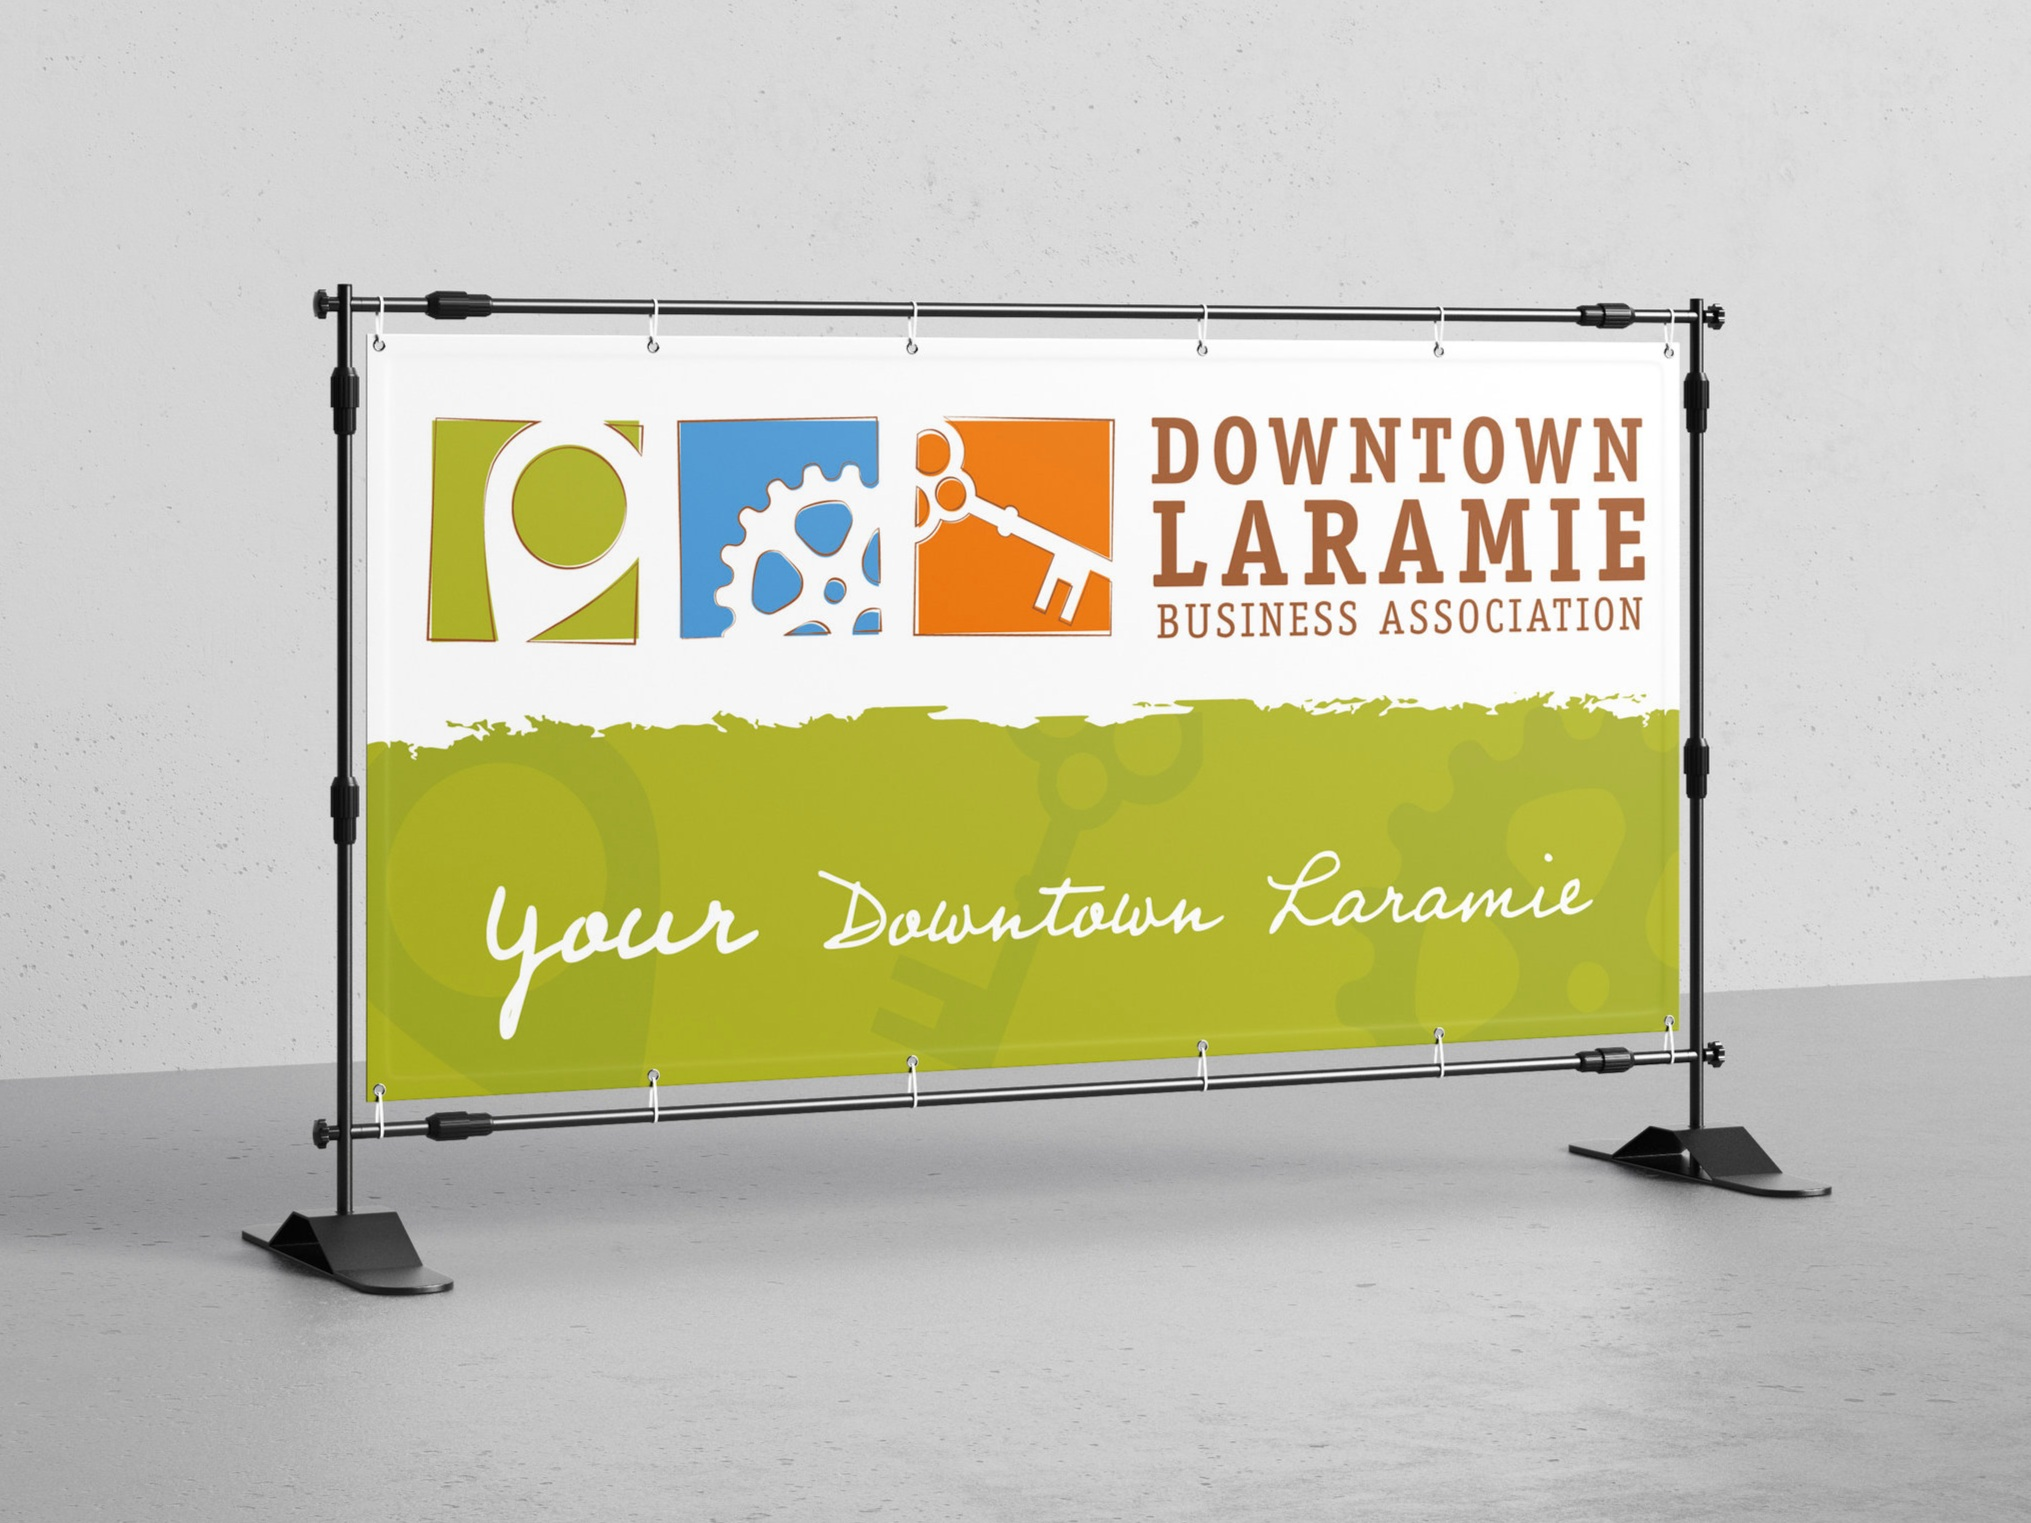 DOWNTOWN LARAMIE Logo concepting and design, promotional production